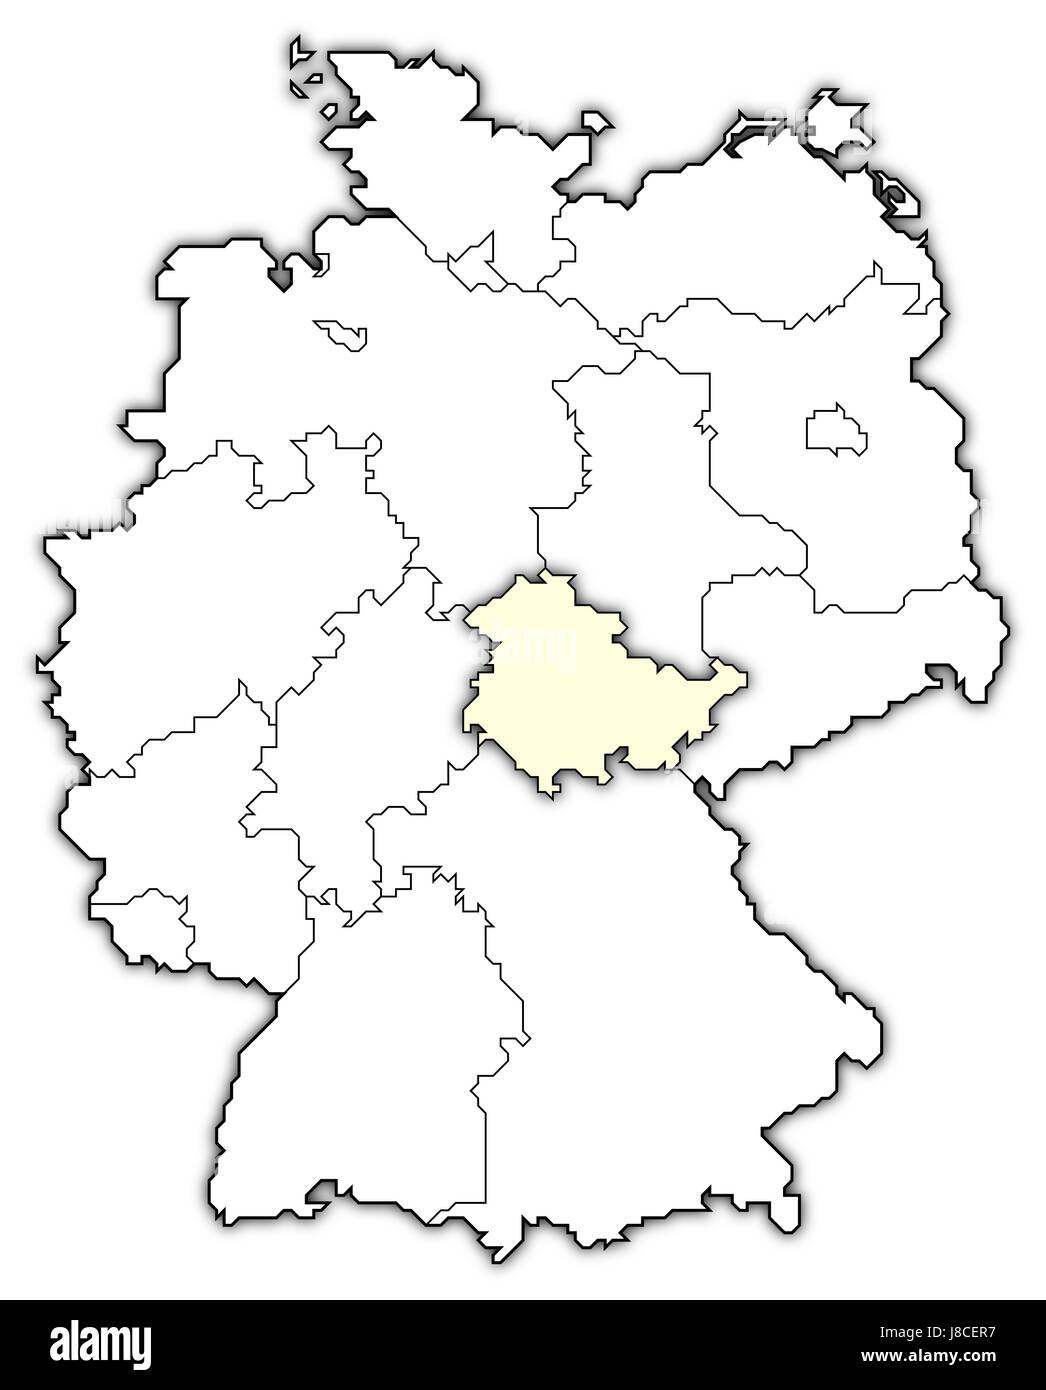 map of germany,thuringia highlighted - Stock Image